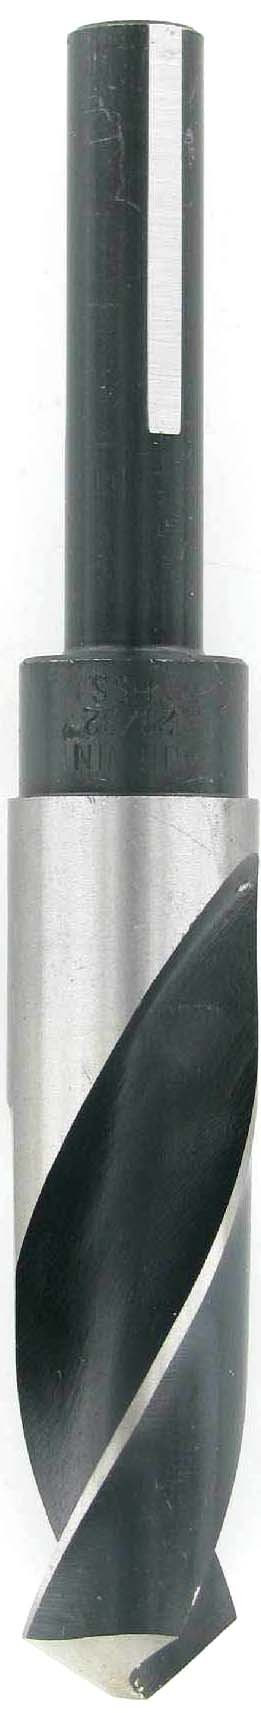 Irwin 29/32'' Silver & Deming High Speed Steel Fractional 1/2'' Reduced Shank Drill Bits